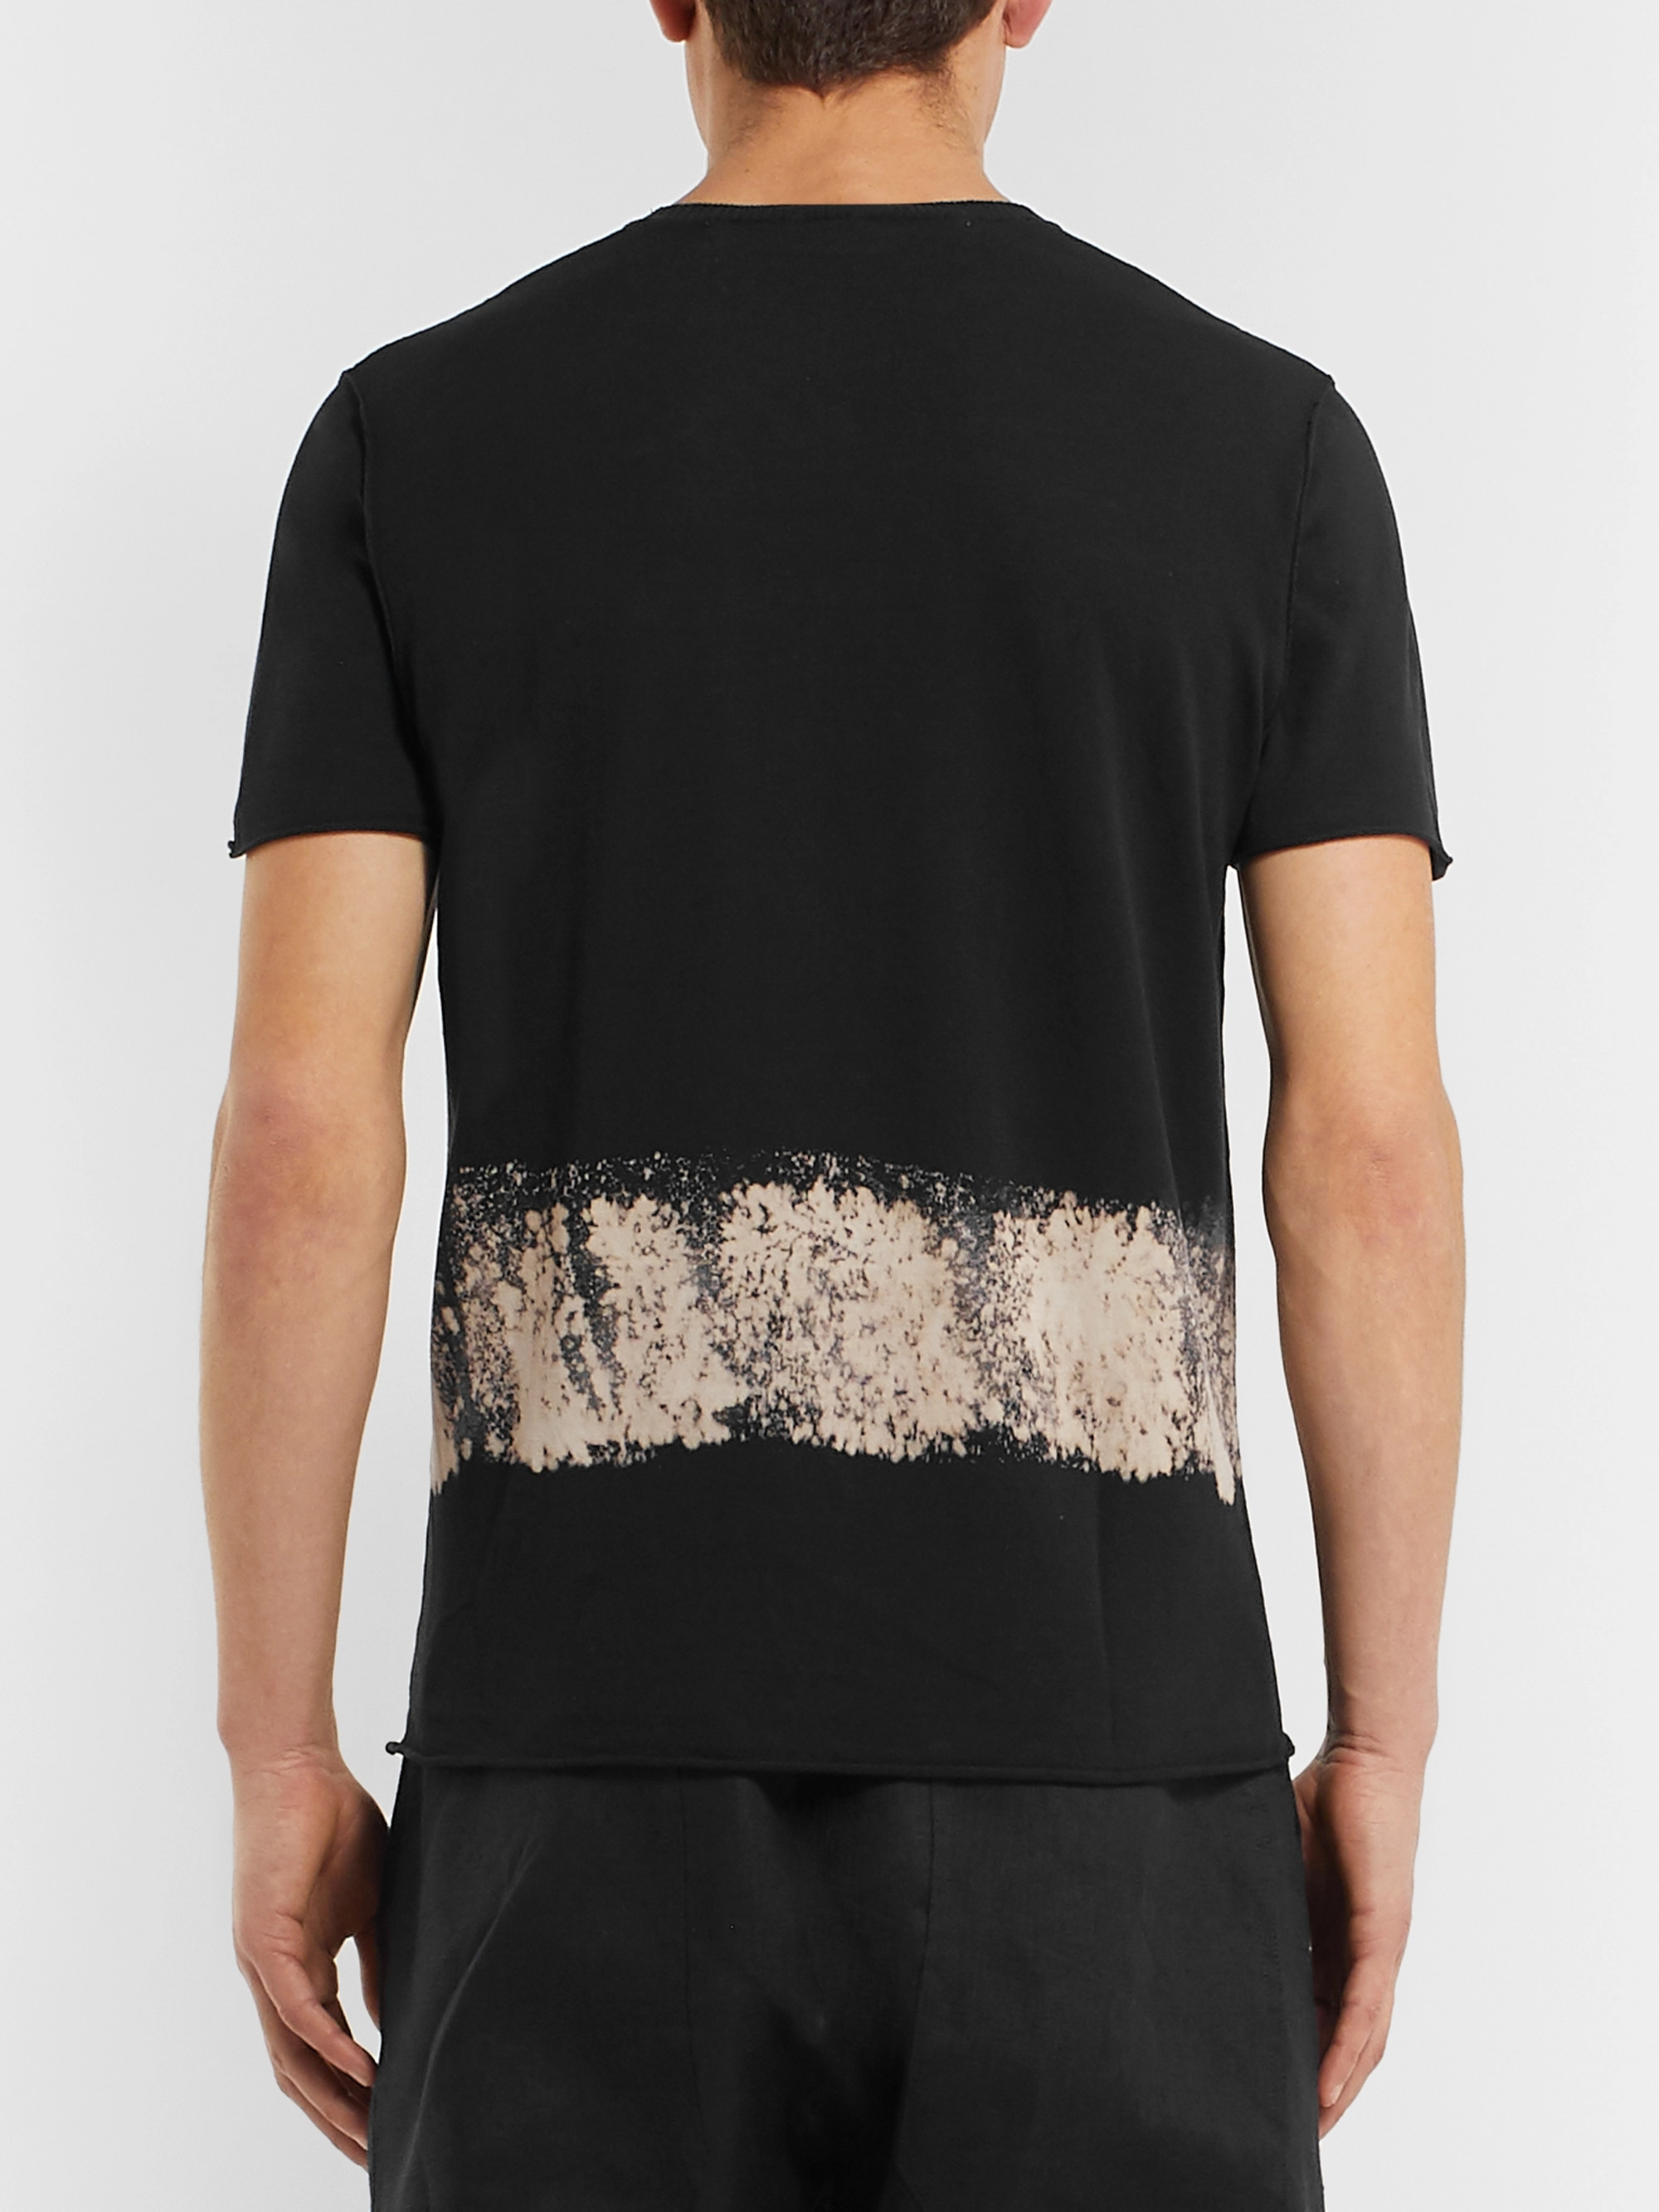 Isabel Benenato Dip-Dyed Knitted Cotton T-Shirt